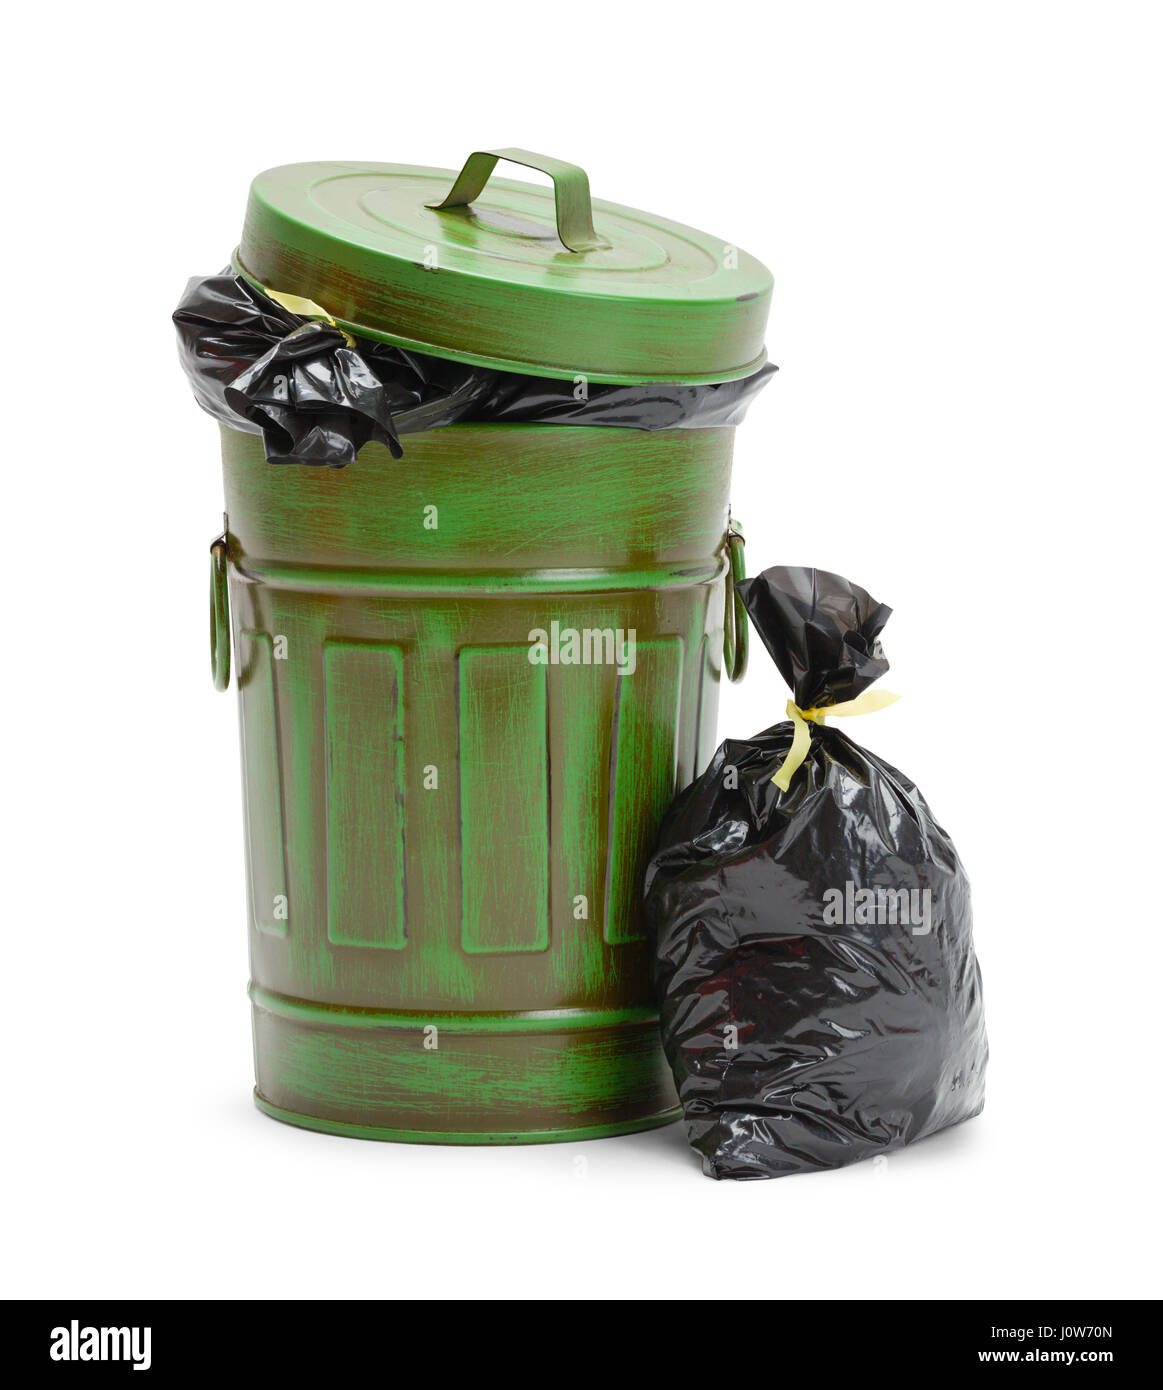 Full Green Trash Can with Garbage Bags Isolated on White Background. - Stock Image